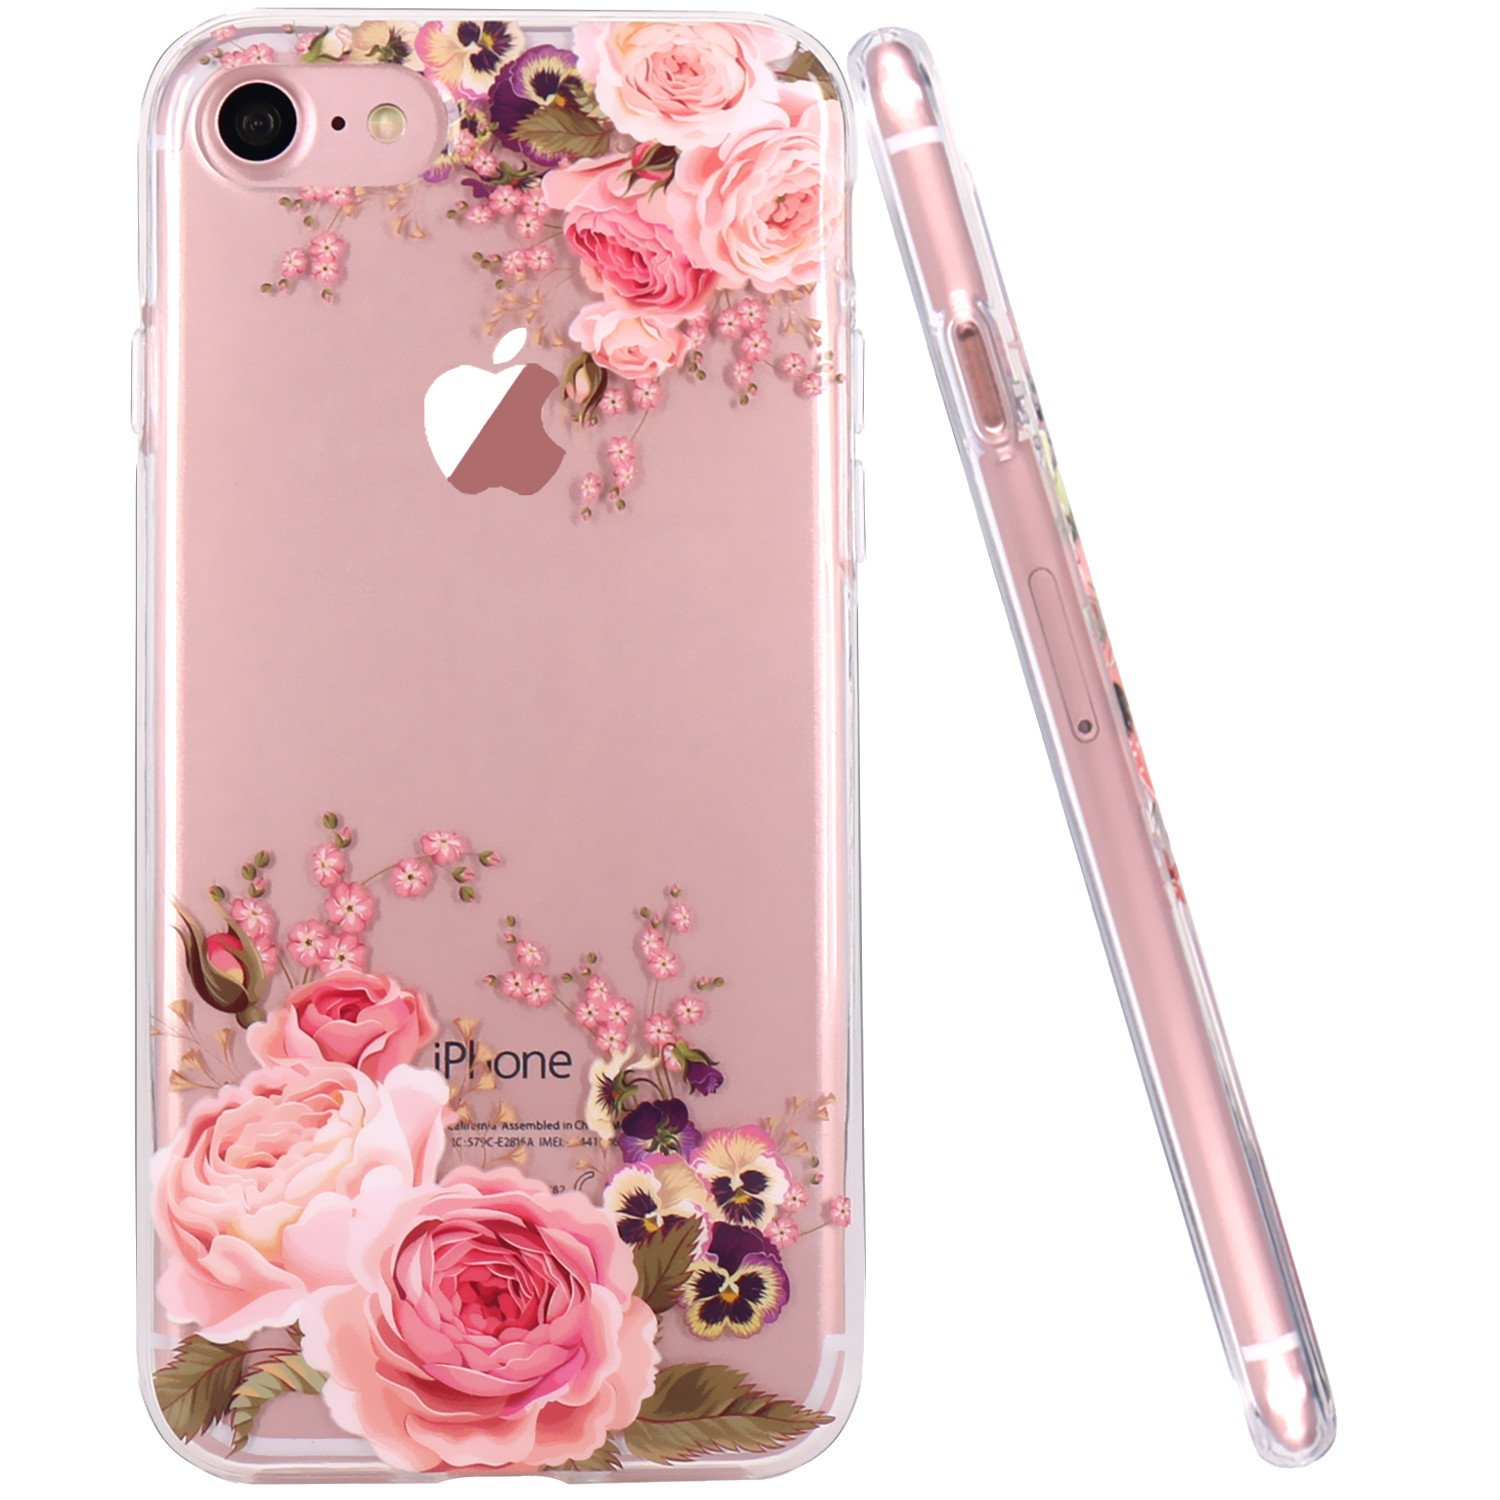 new arrival 46102 80cad JAHOLAN Cute Girl Floral Design Clear TPU Soft Slim Flexible Silicone Cover  Phone Case Compatible with iPhone 7 iPhone 8 - Rose Flower